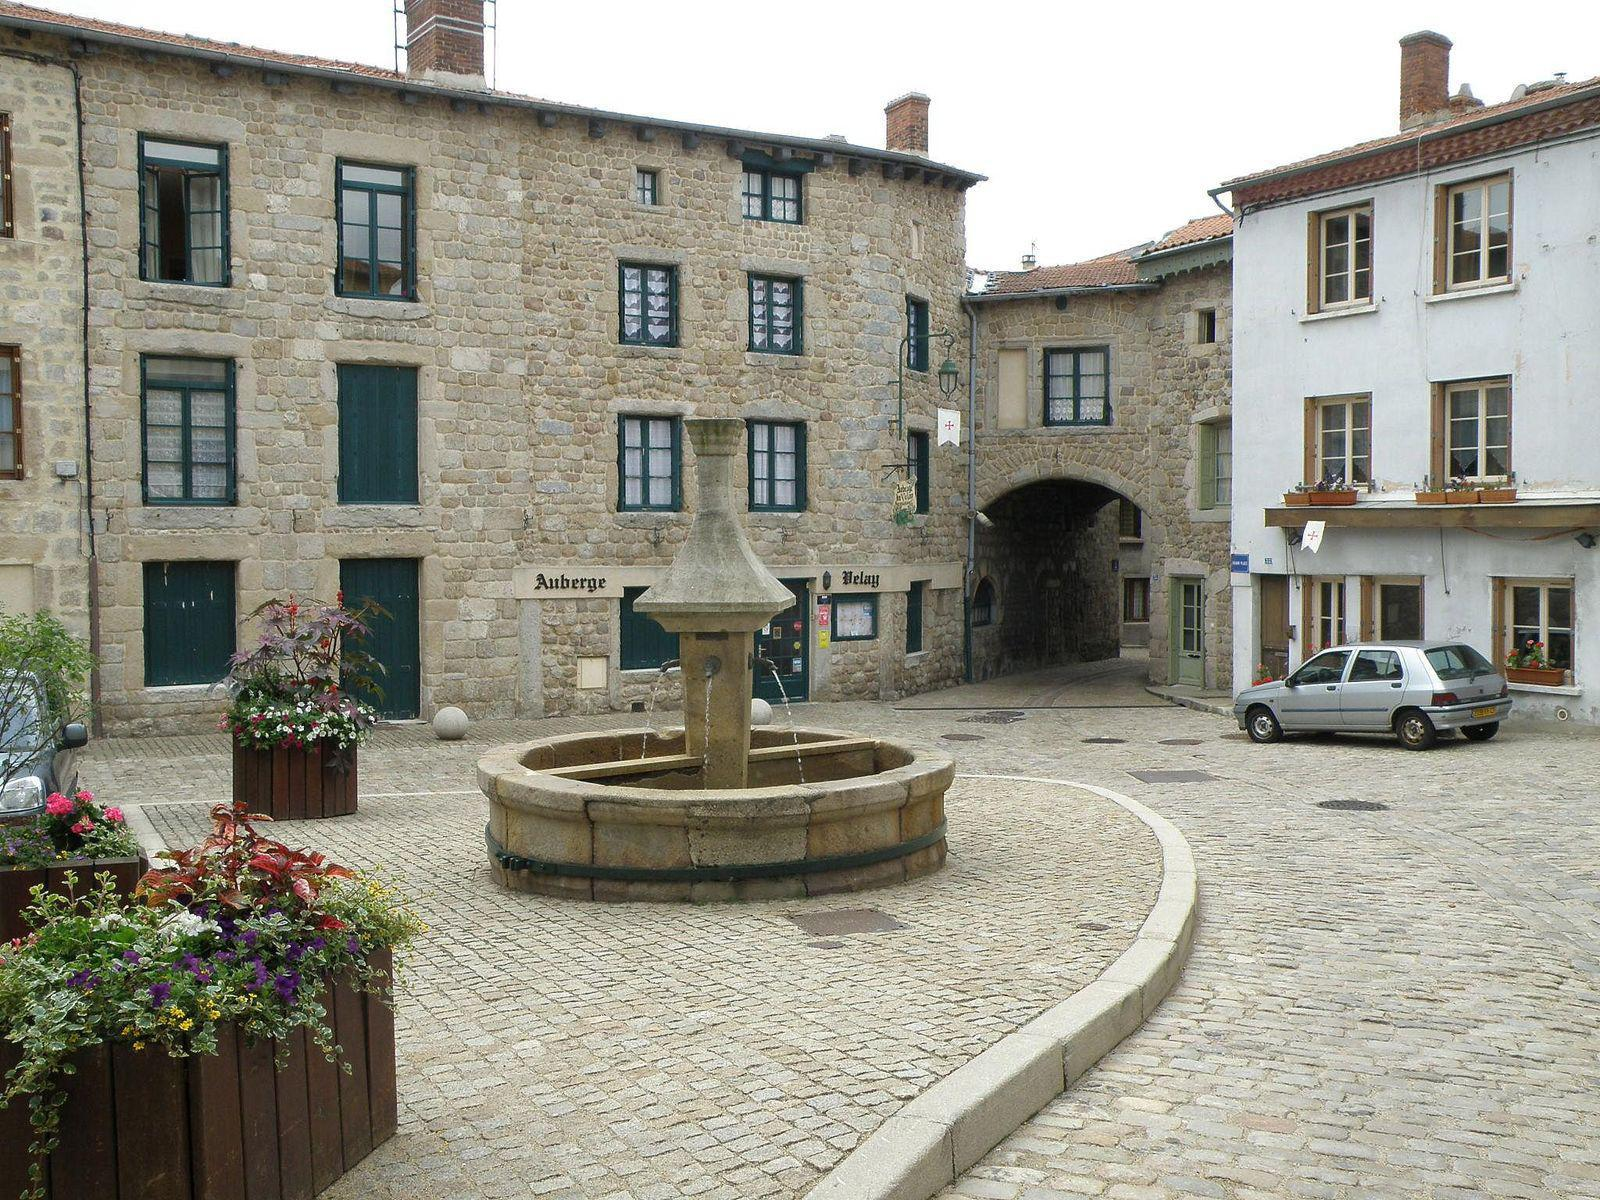 Office de tourisme de saint didier en velay saint didier en velay 43140 haute loire 43 - Office tourisme puy st vincent ...